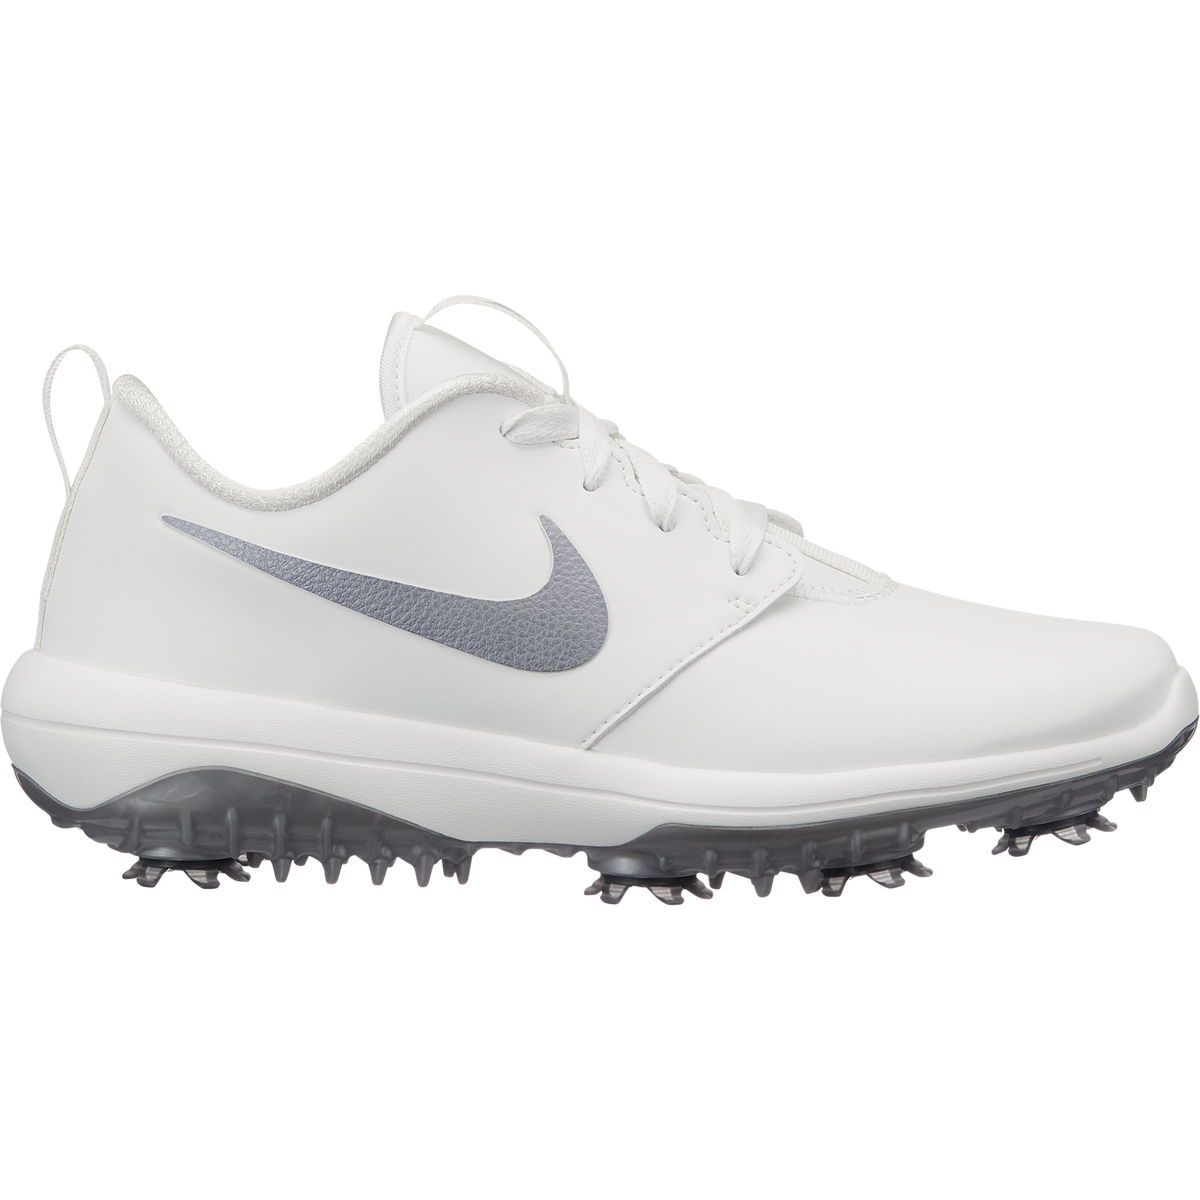 accf87bbee7c Images. Nike Roshe G Tour Women  39 s Golf Shoe - White Black